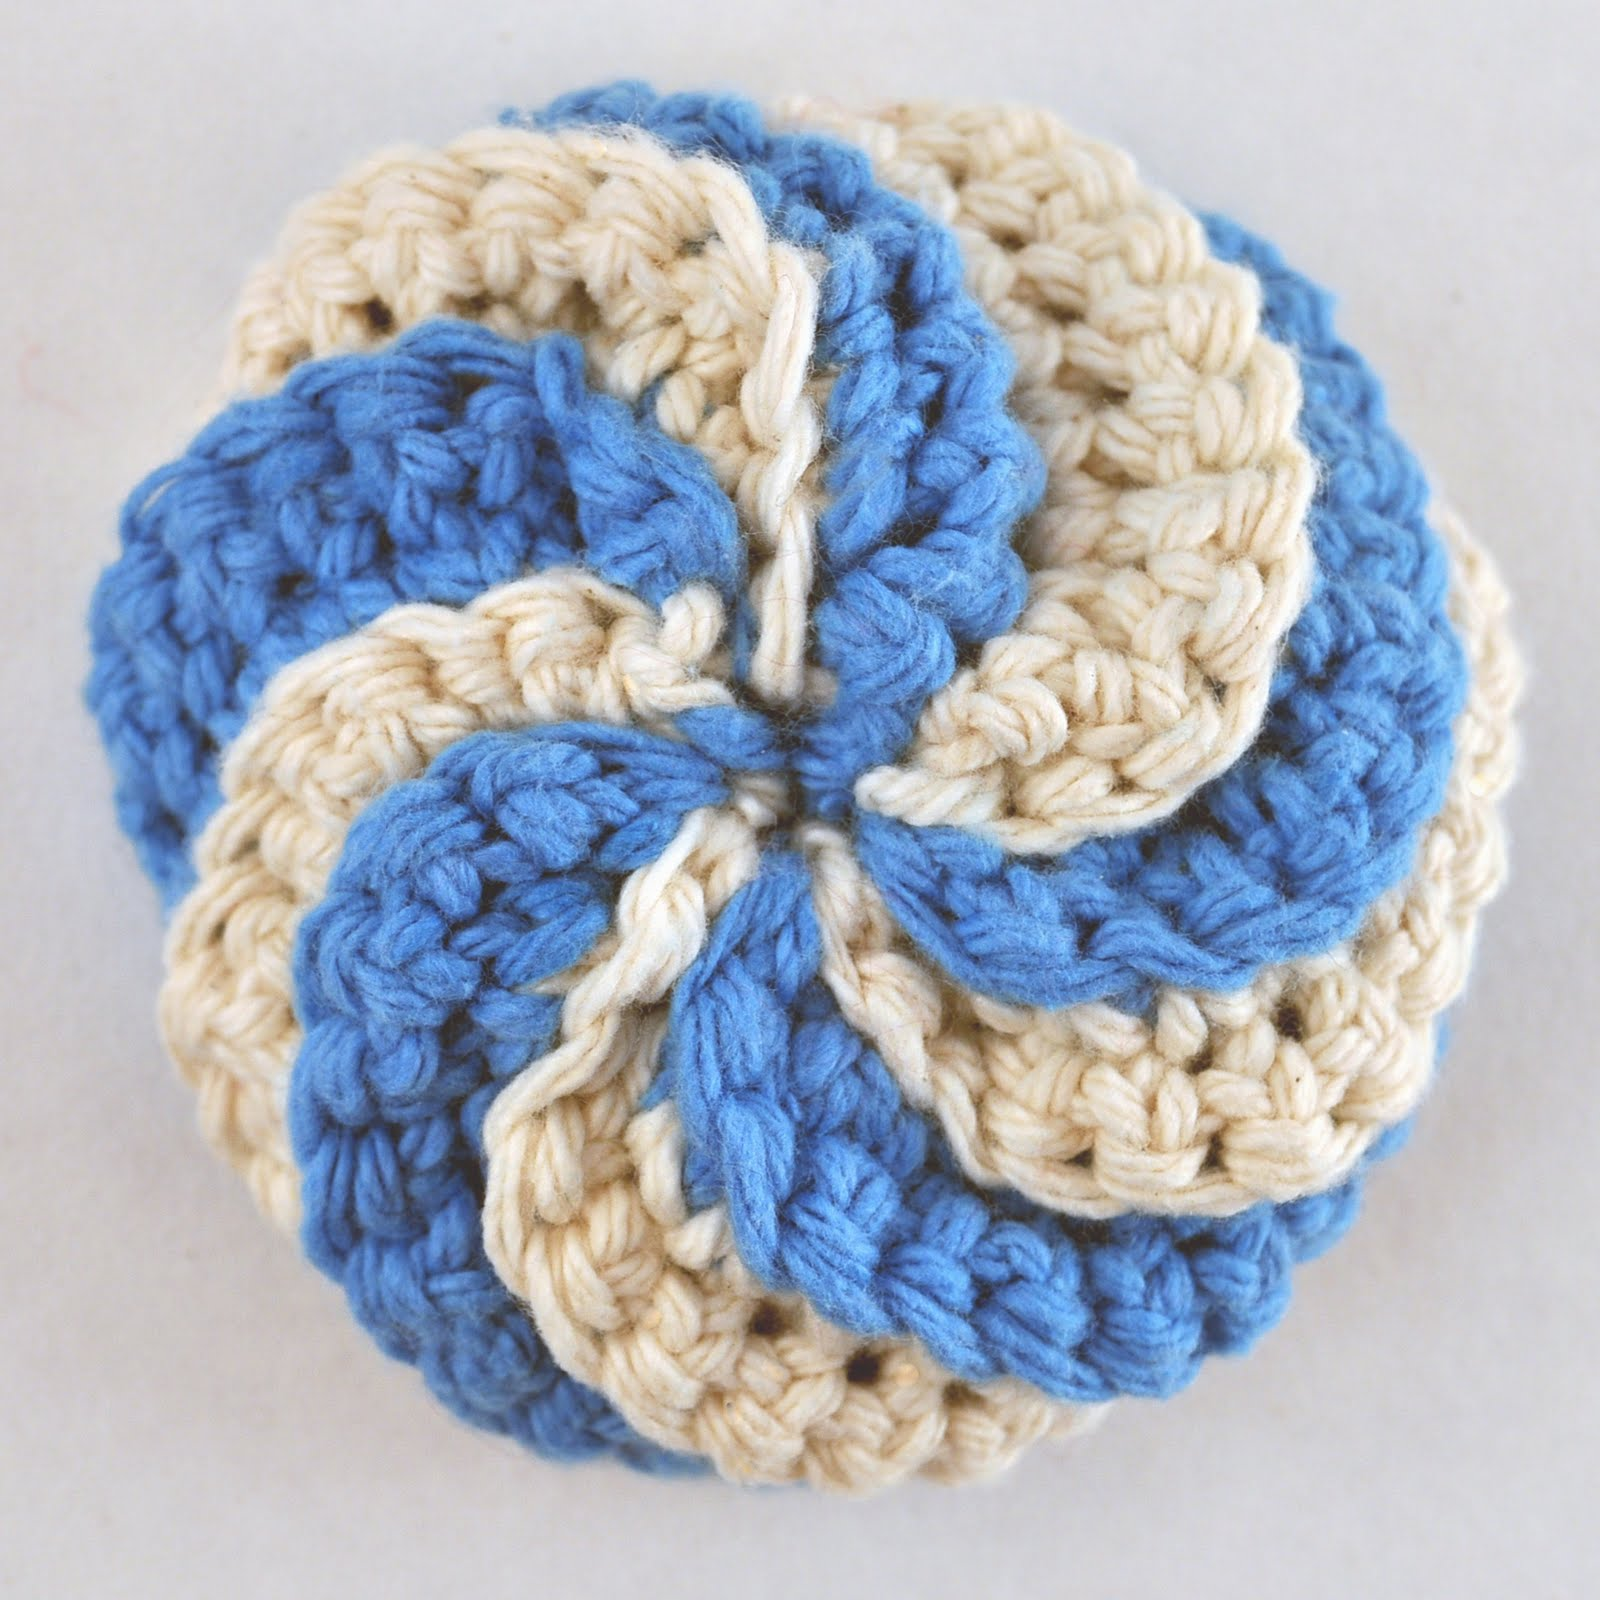 Crocheting Scrubbies : CrochetBeautyShoppe: Crochet Tawashi Scrubbies